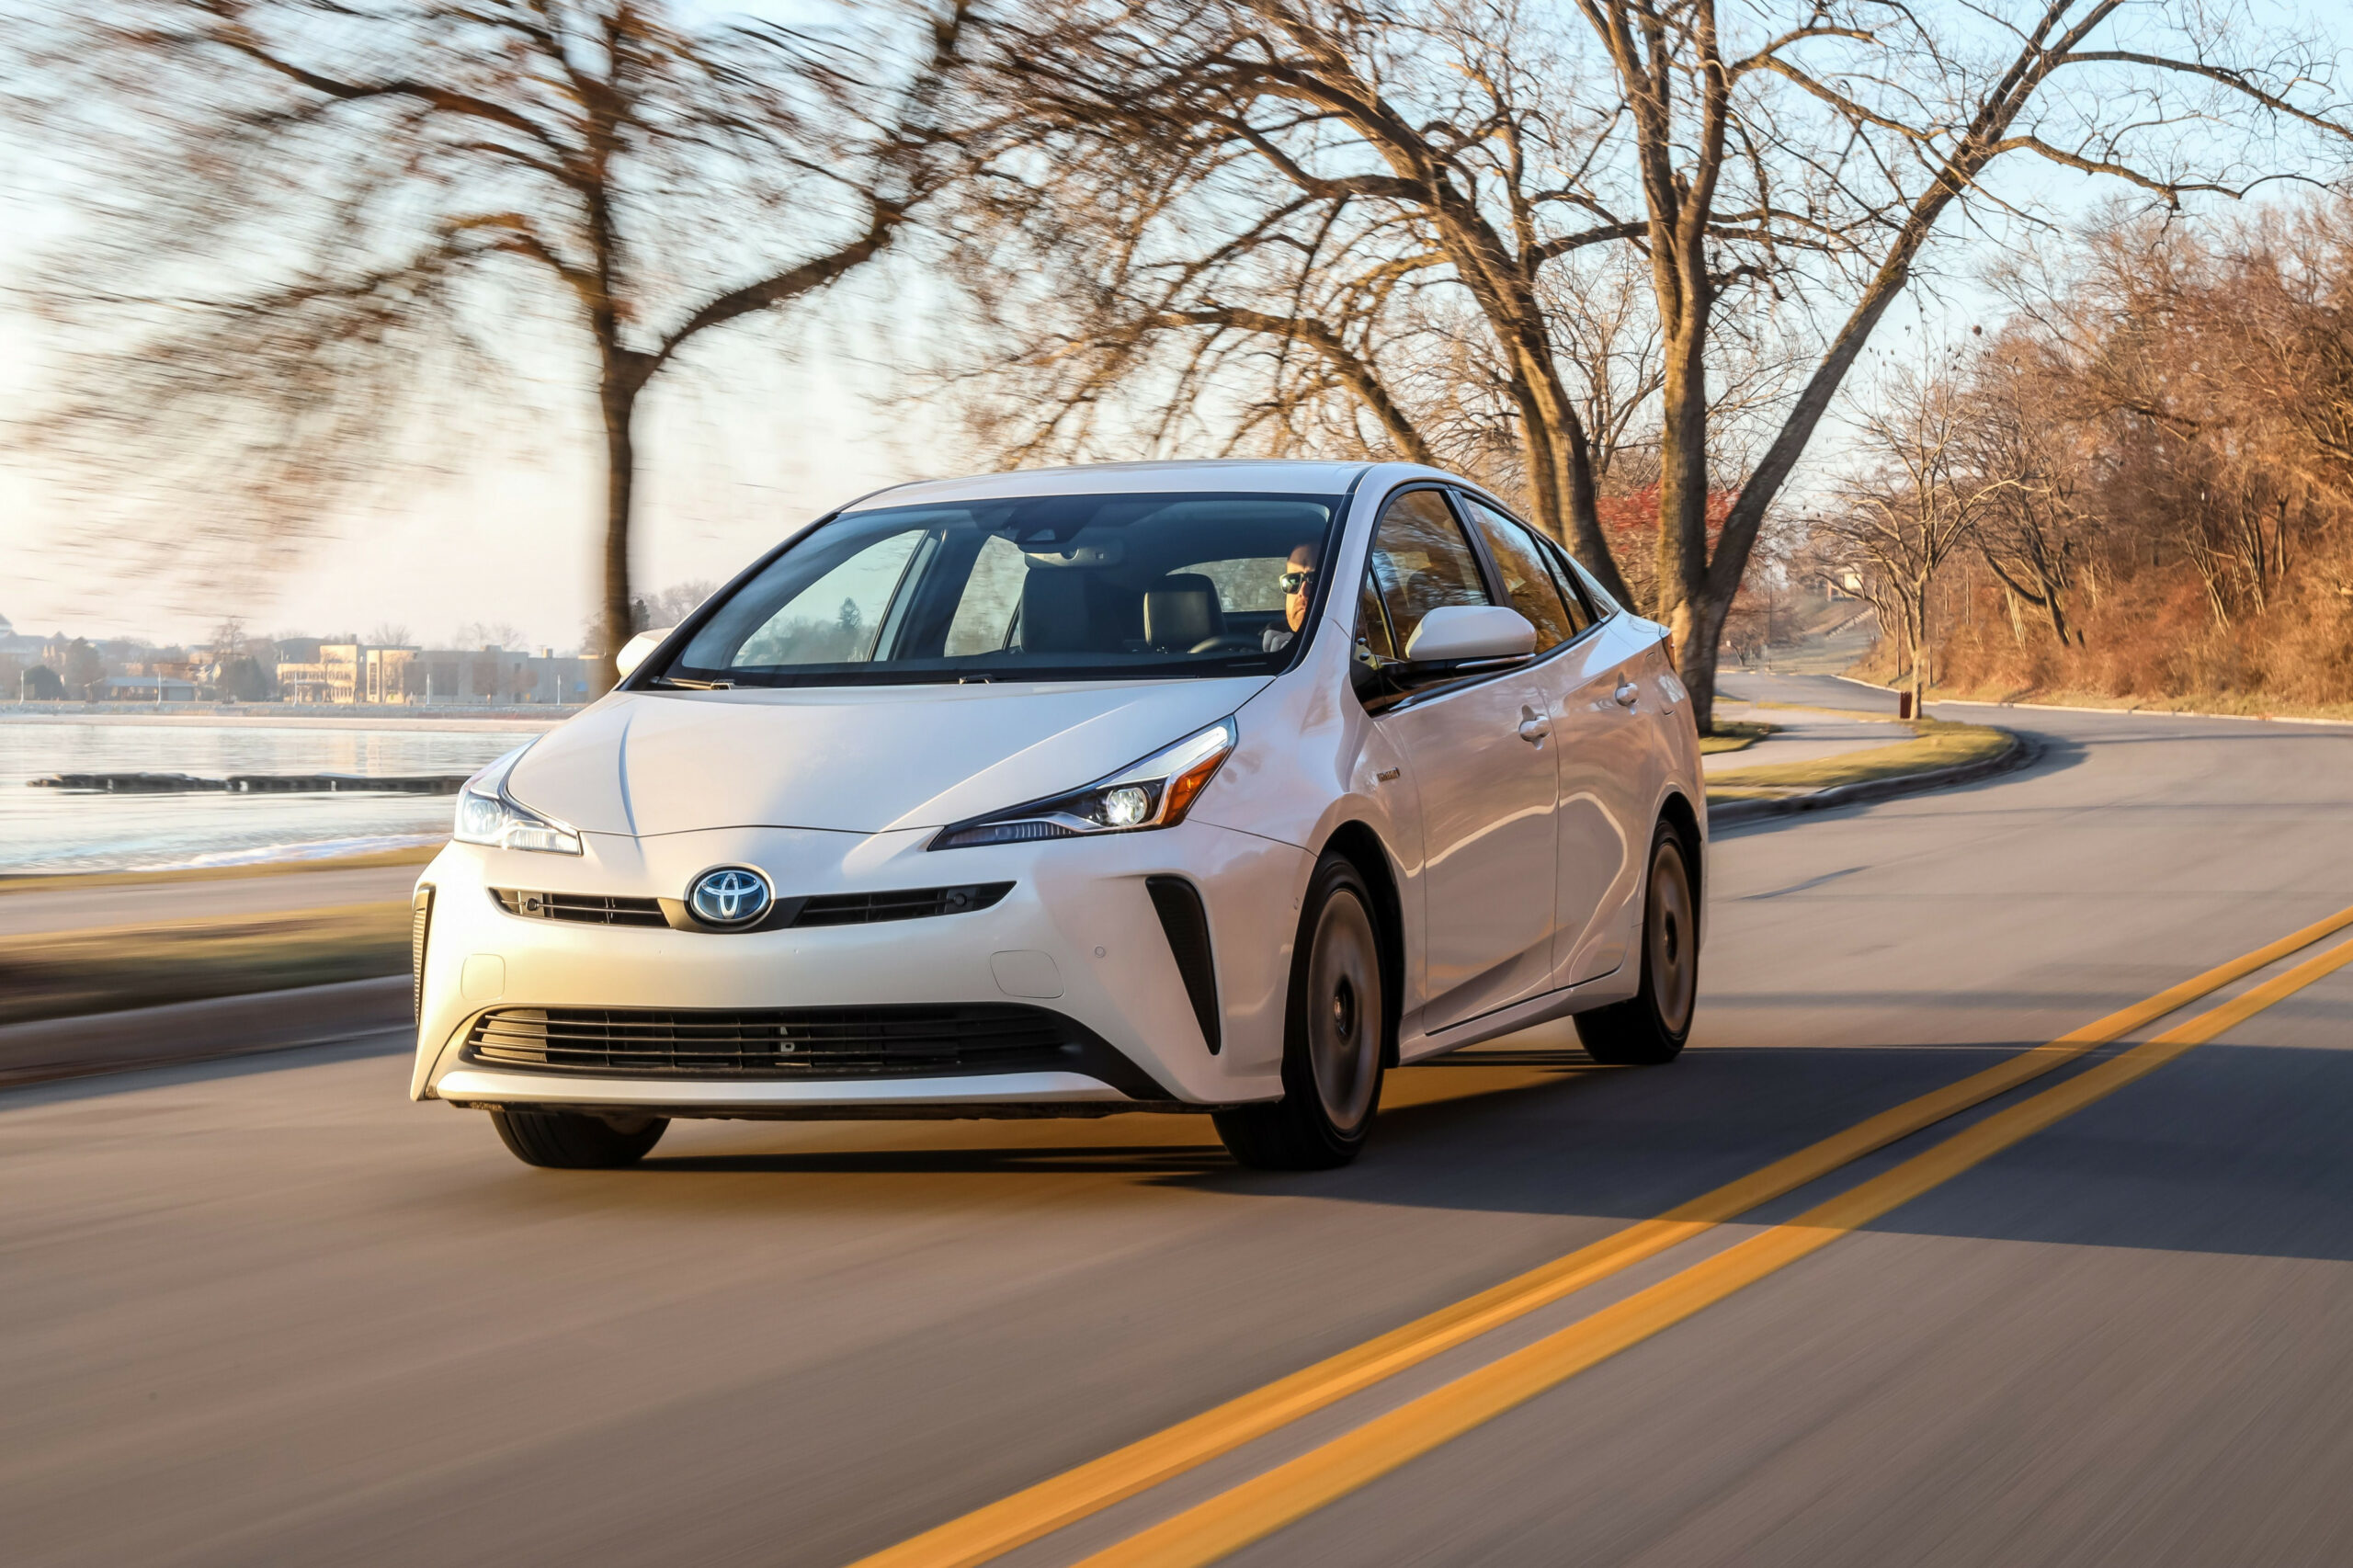 6 Toyota Prius Review, Pricing, and Specs - 2020 toyota prius mpg